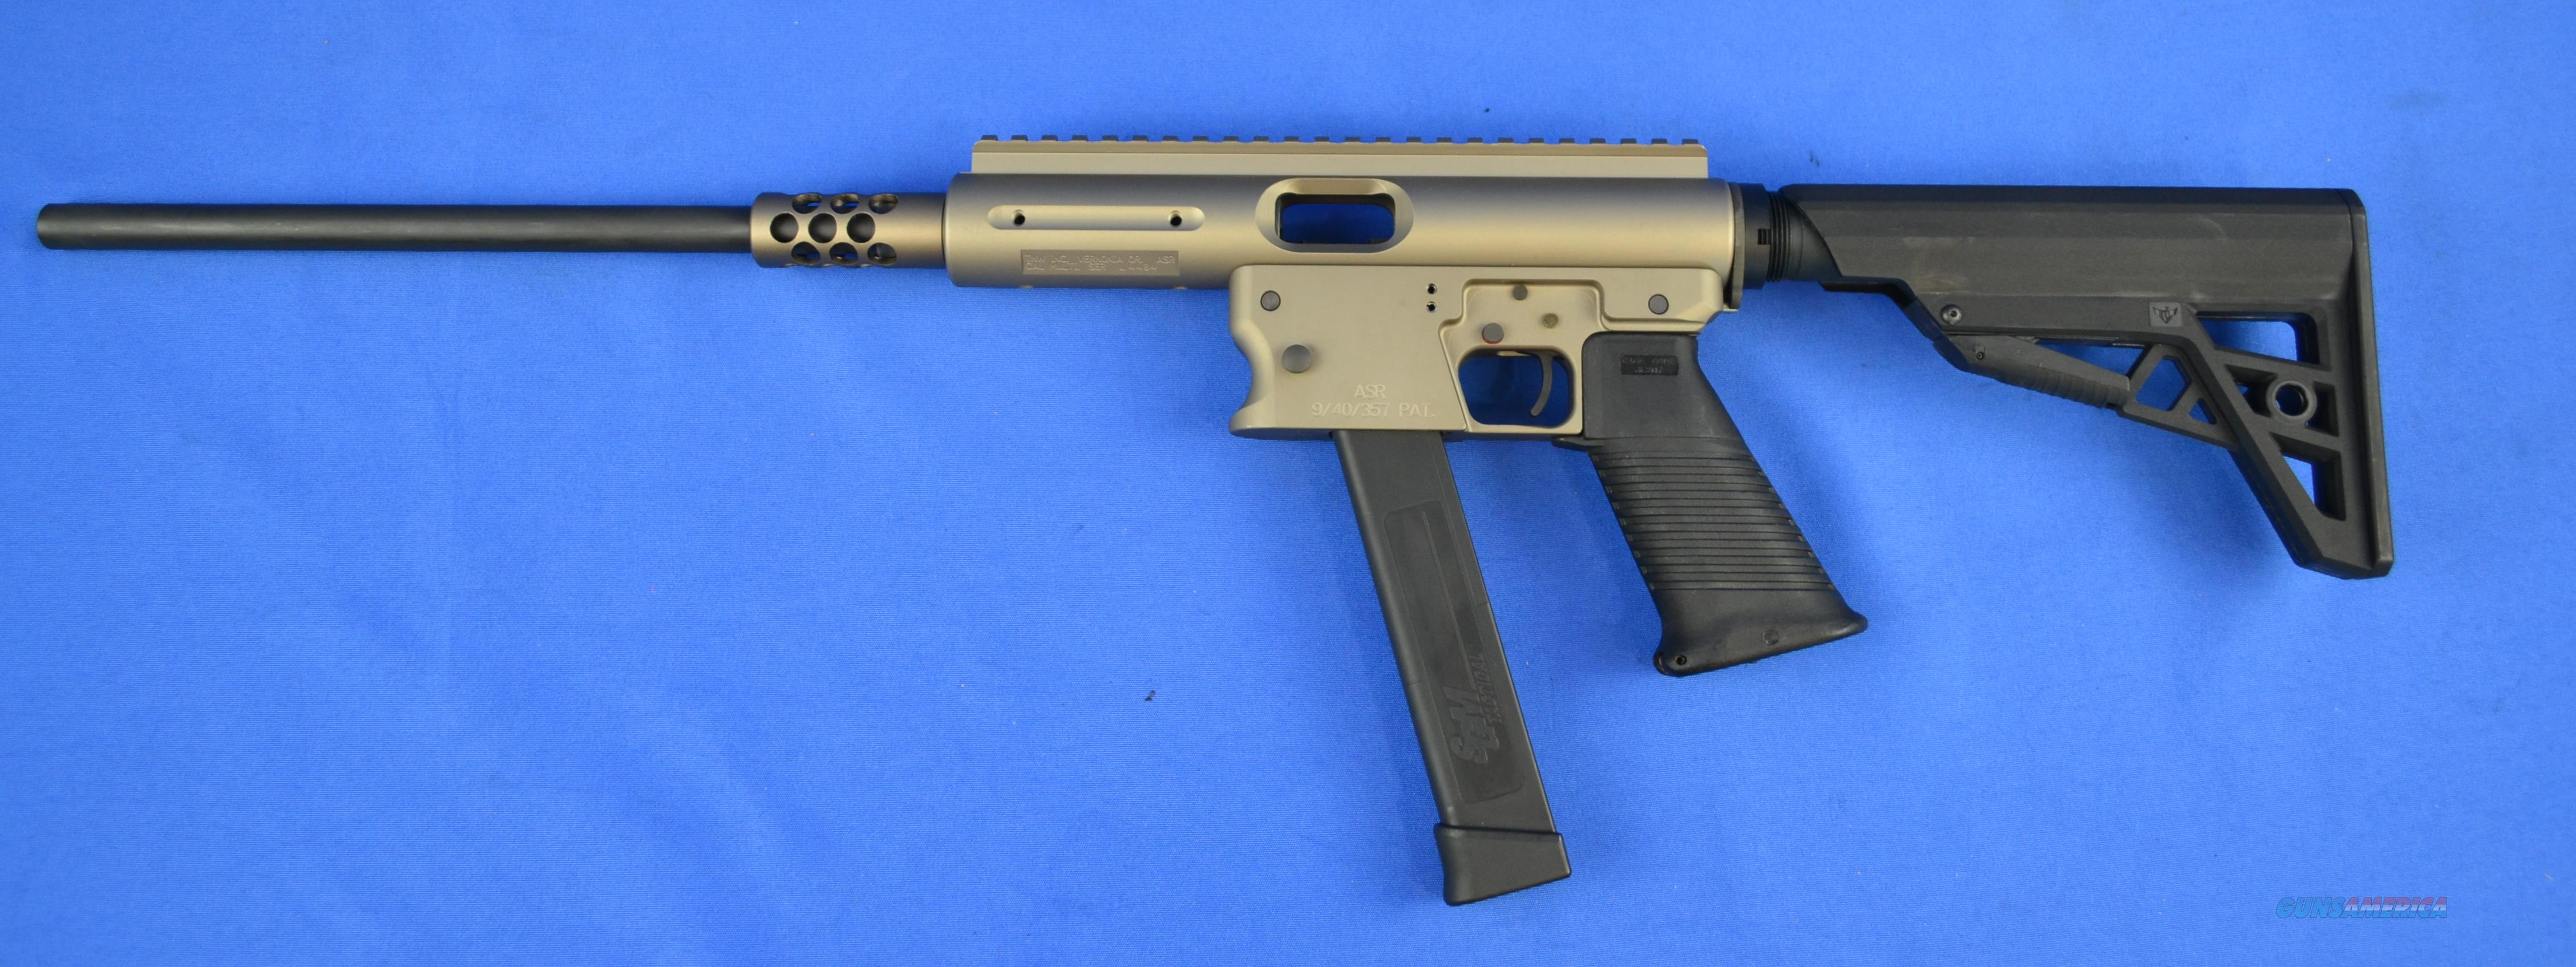 TNW ASR 9MM CARBINE FDE AERO SURVIVAL RIFLE 22LR .357SIG 40SW 10MM 45ACP  Guns > Rifles > Custom Rifles > AR-15 Family